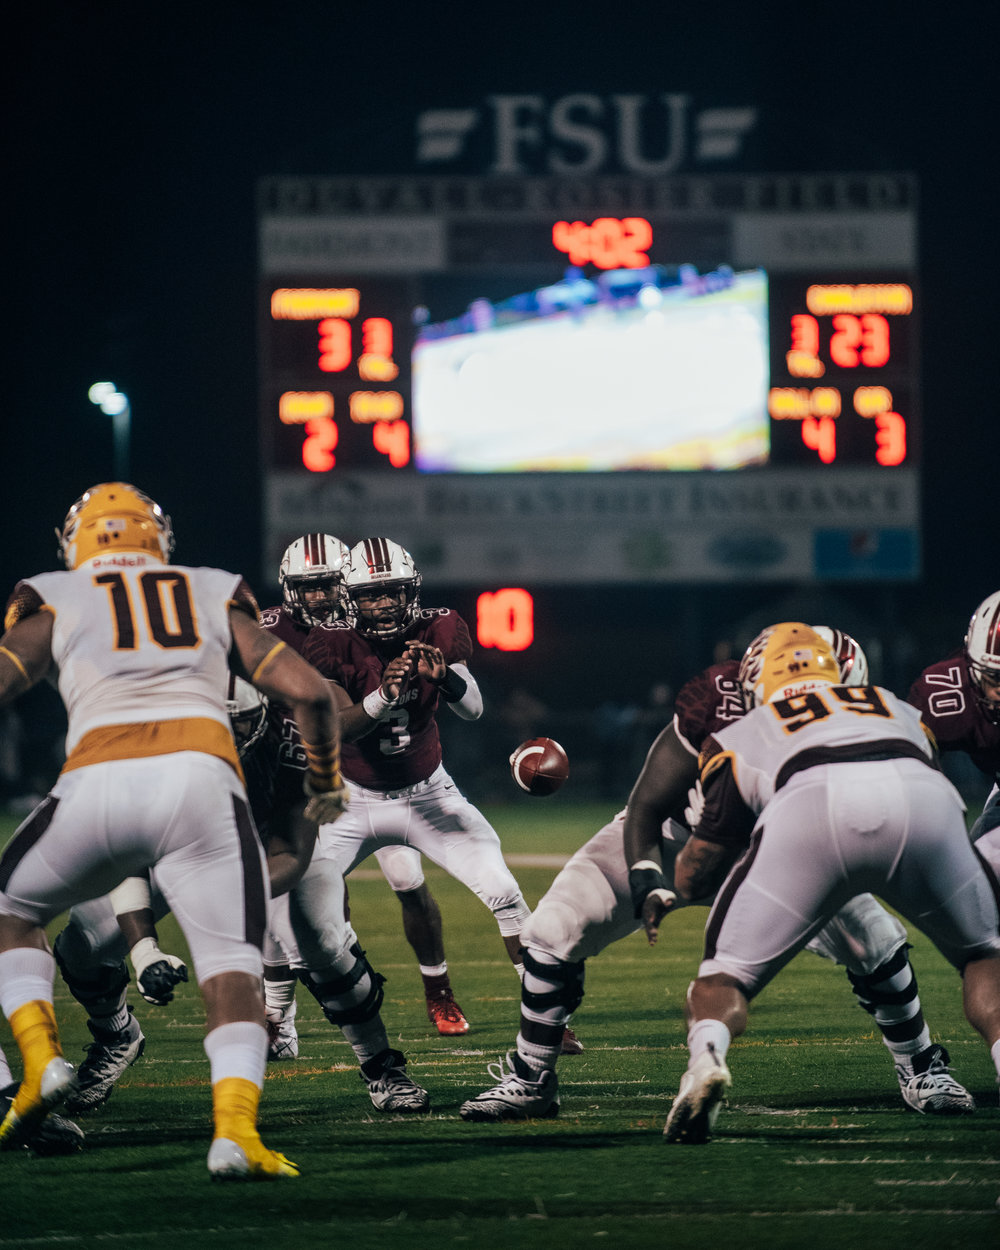 football vs charleston personal-15.jpg